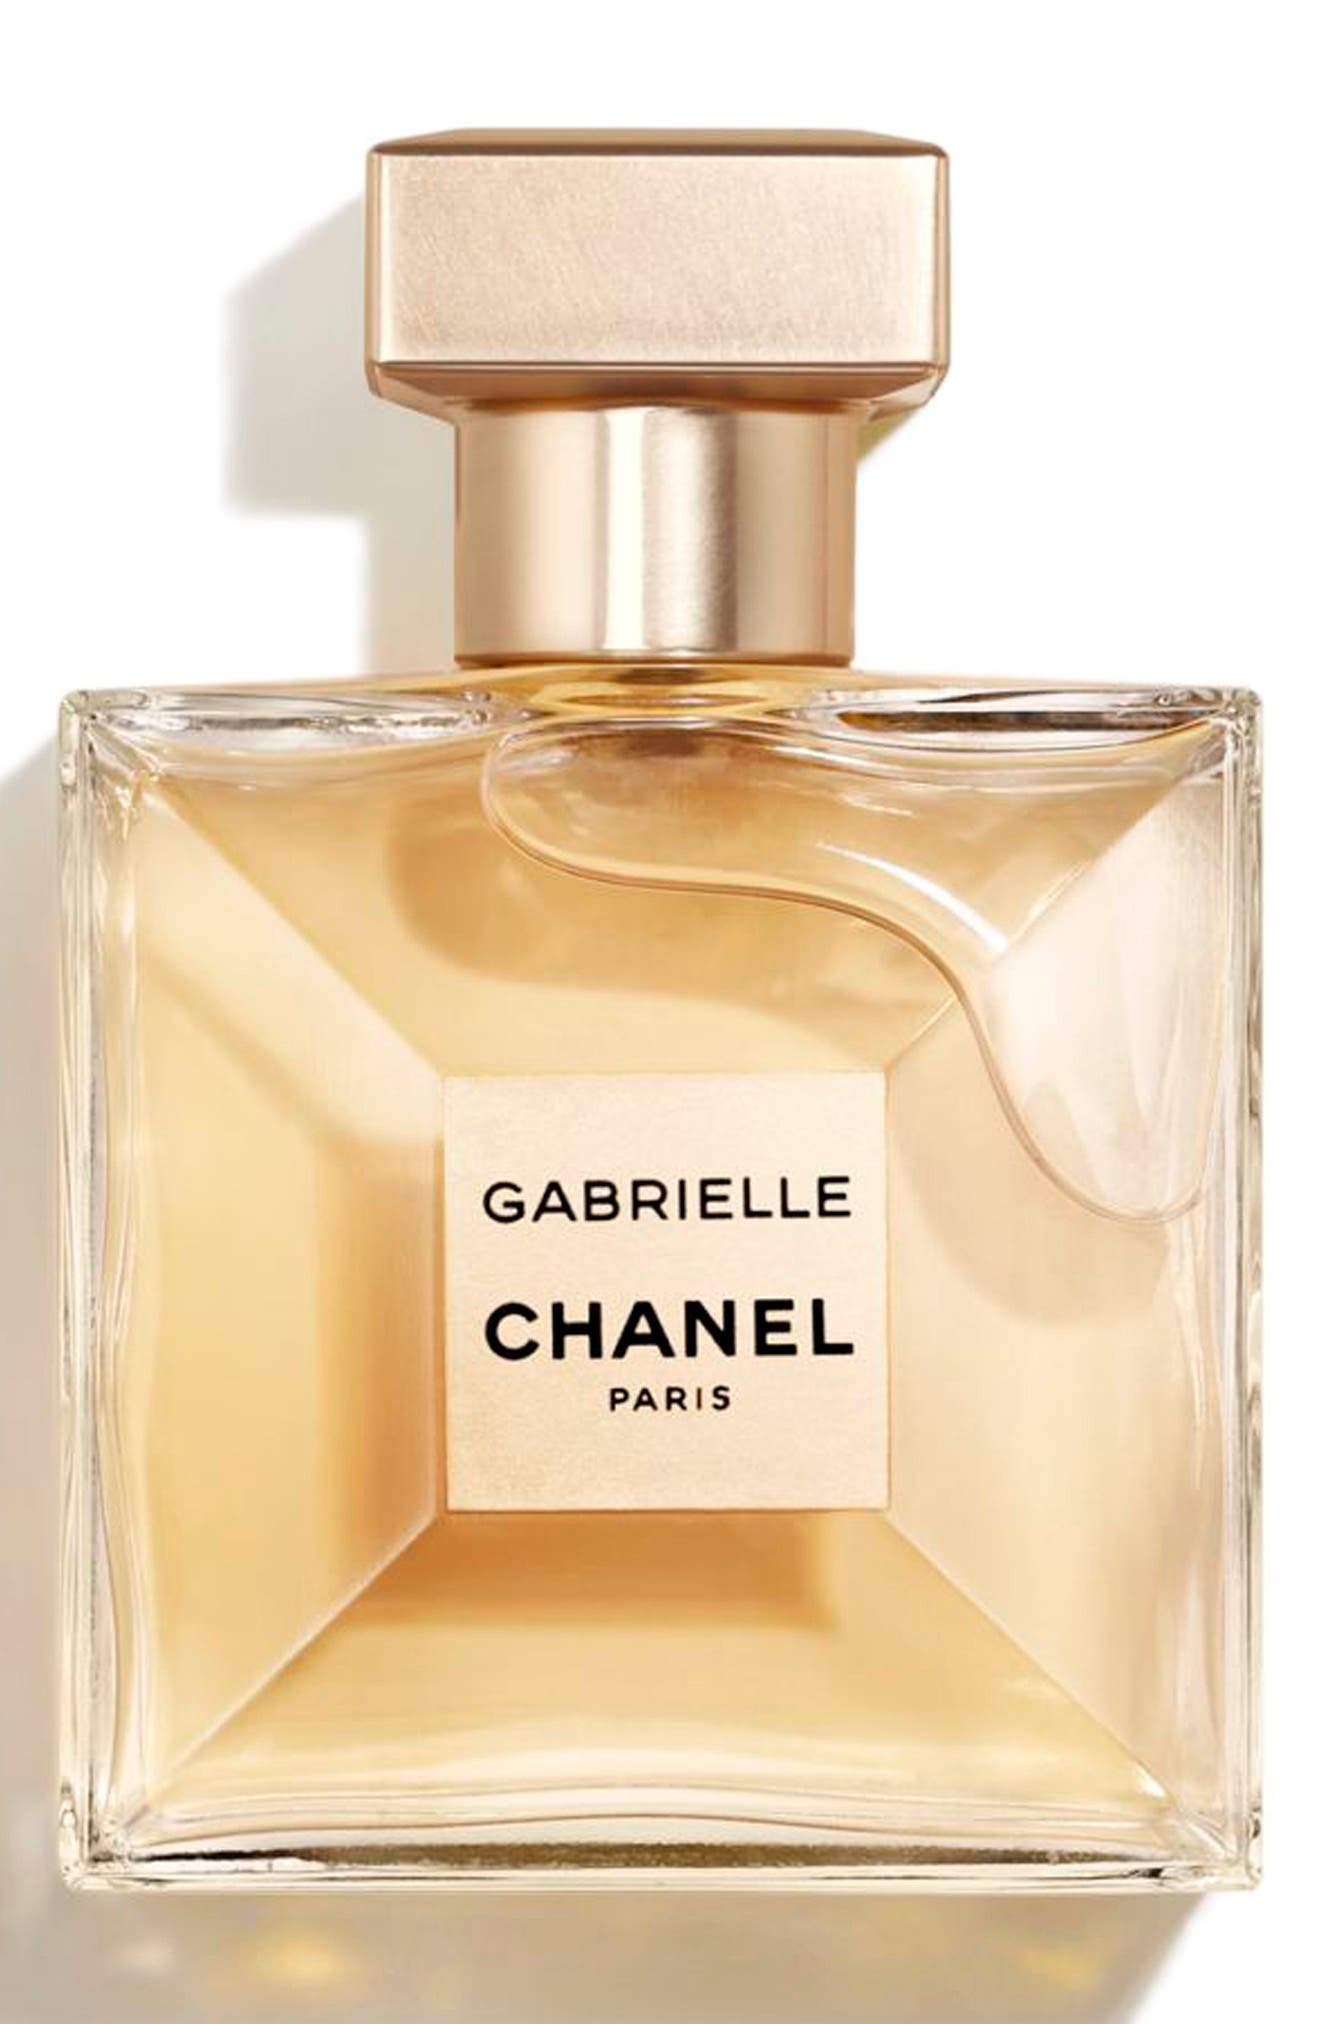 CHANEL, GABRIELLE CHANEL<br />Eau de Parfum Spray, Alternate thumbnail 2, color, NO COLOR